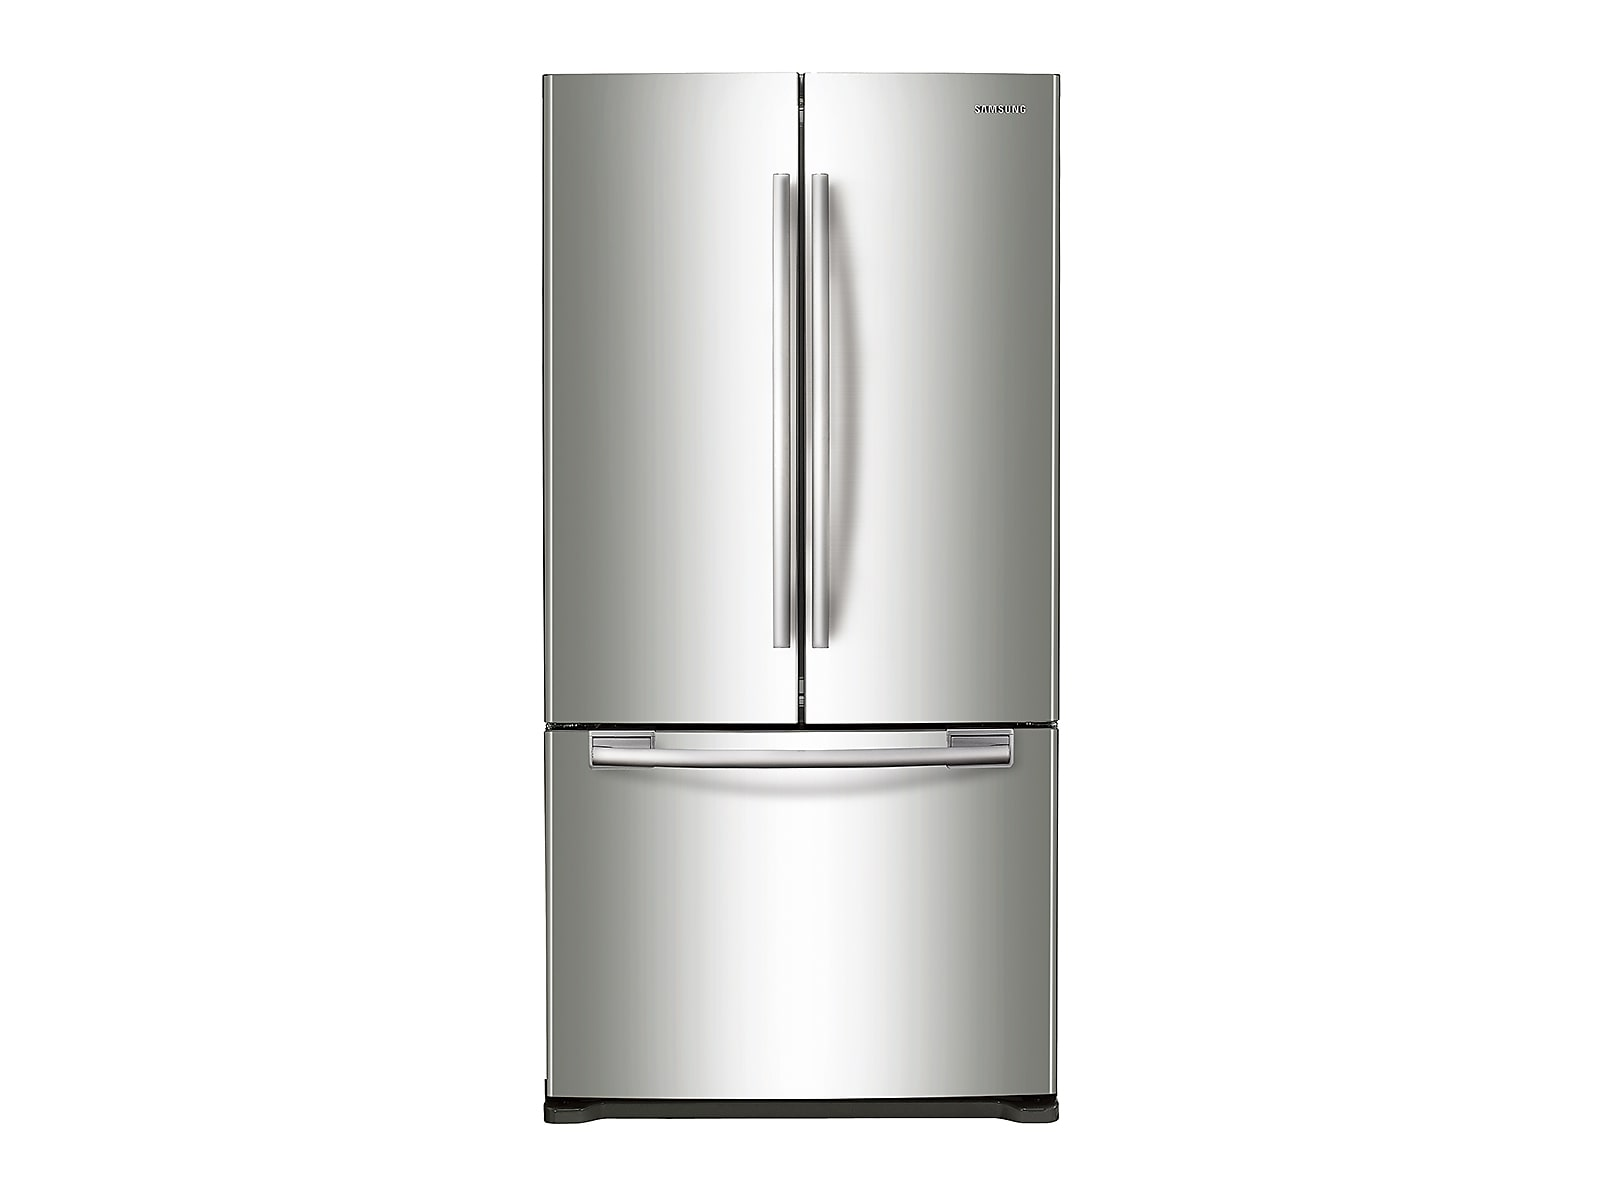 Samsung 20 cu. ft. French Door Refrigerator in Stainless Steel(RF20HFENBSR/US)